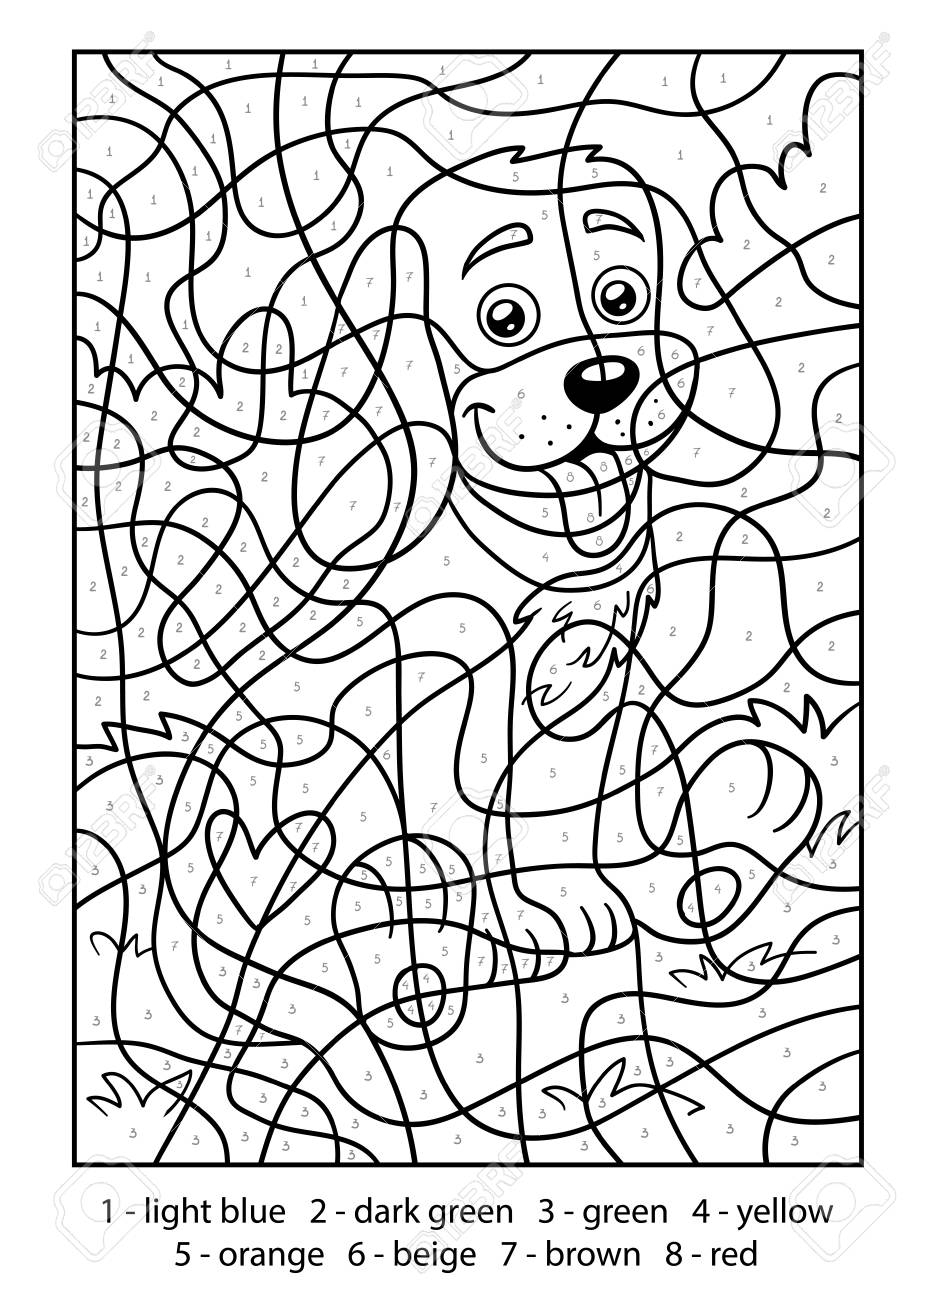 coloring worksheet by numbers craftsactvities and worksheets for preschooltoddler and coloring worksheet by numbers